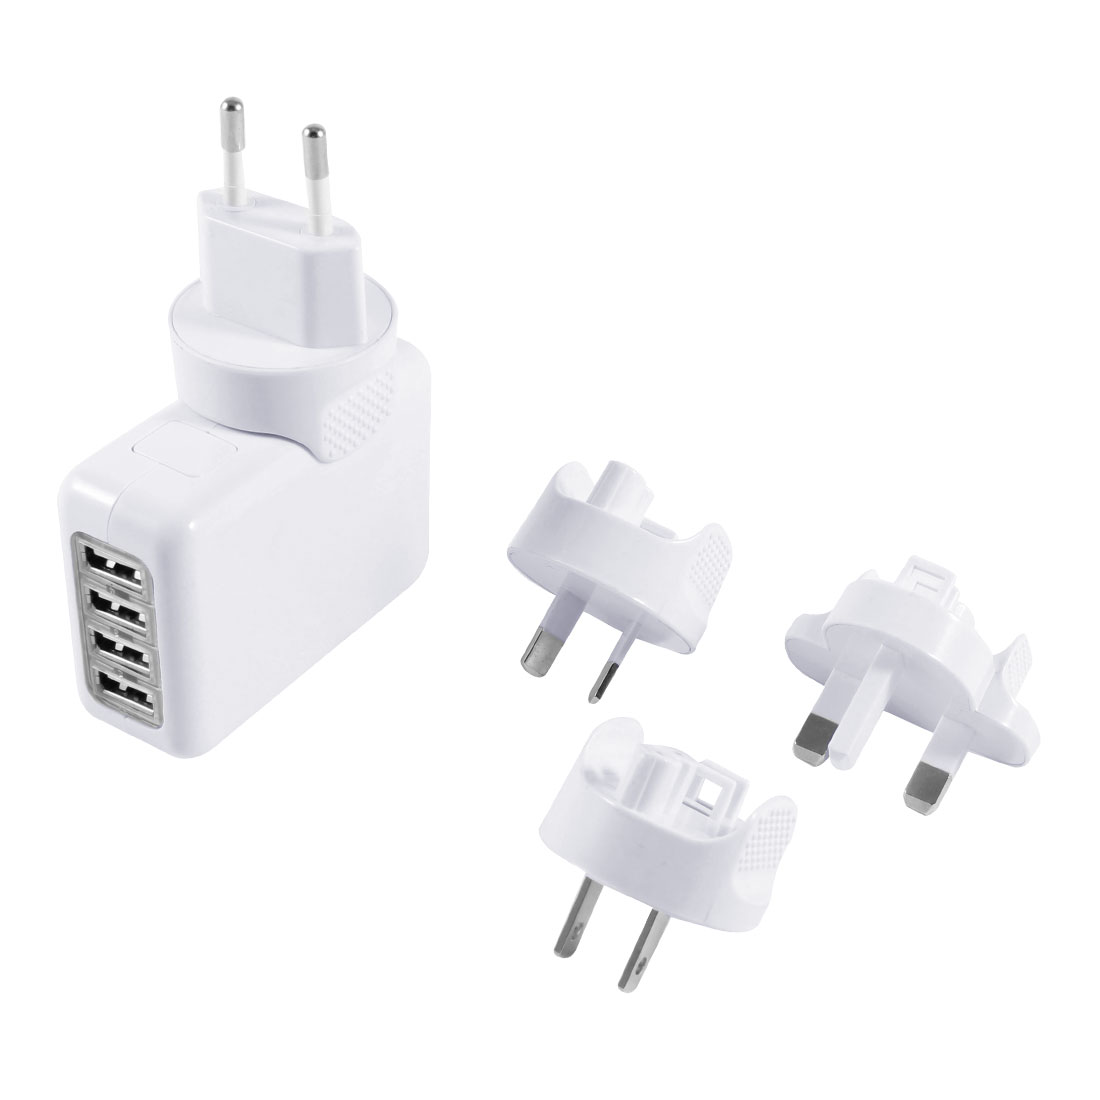 4 Port USB Wall Charger HUB AC Power Adapter Supply Plug UK AU EU US for Phone